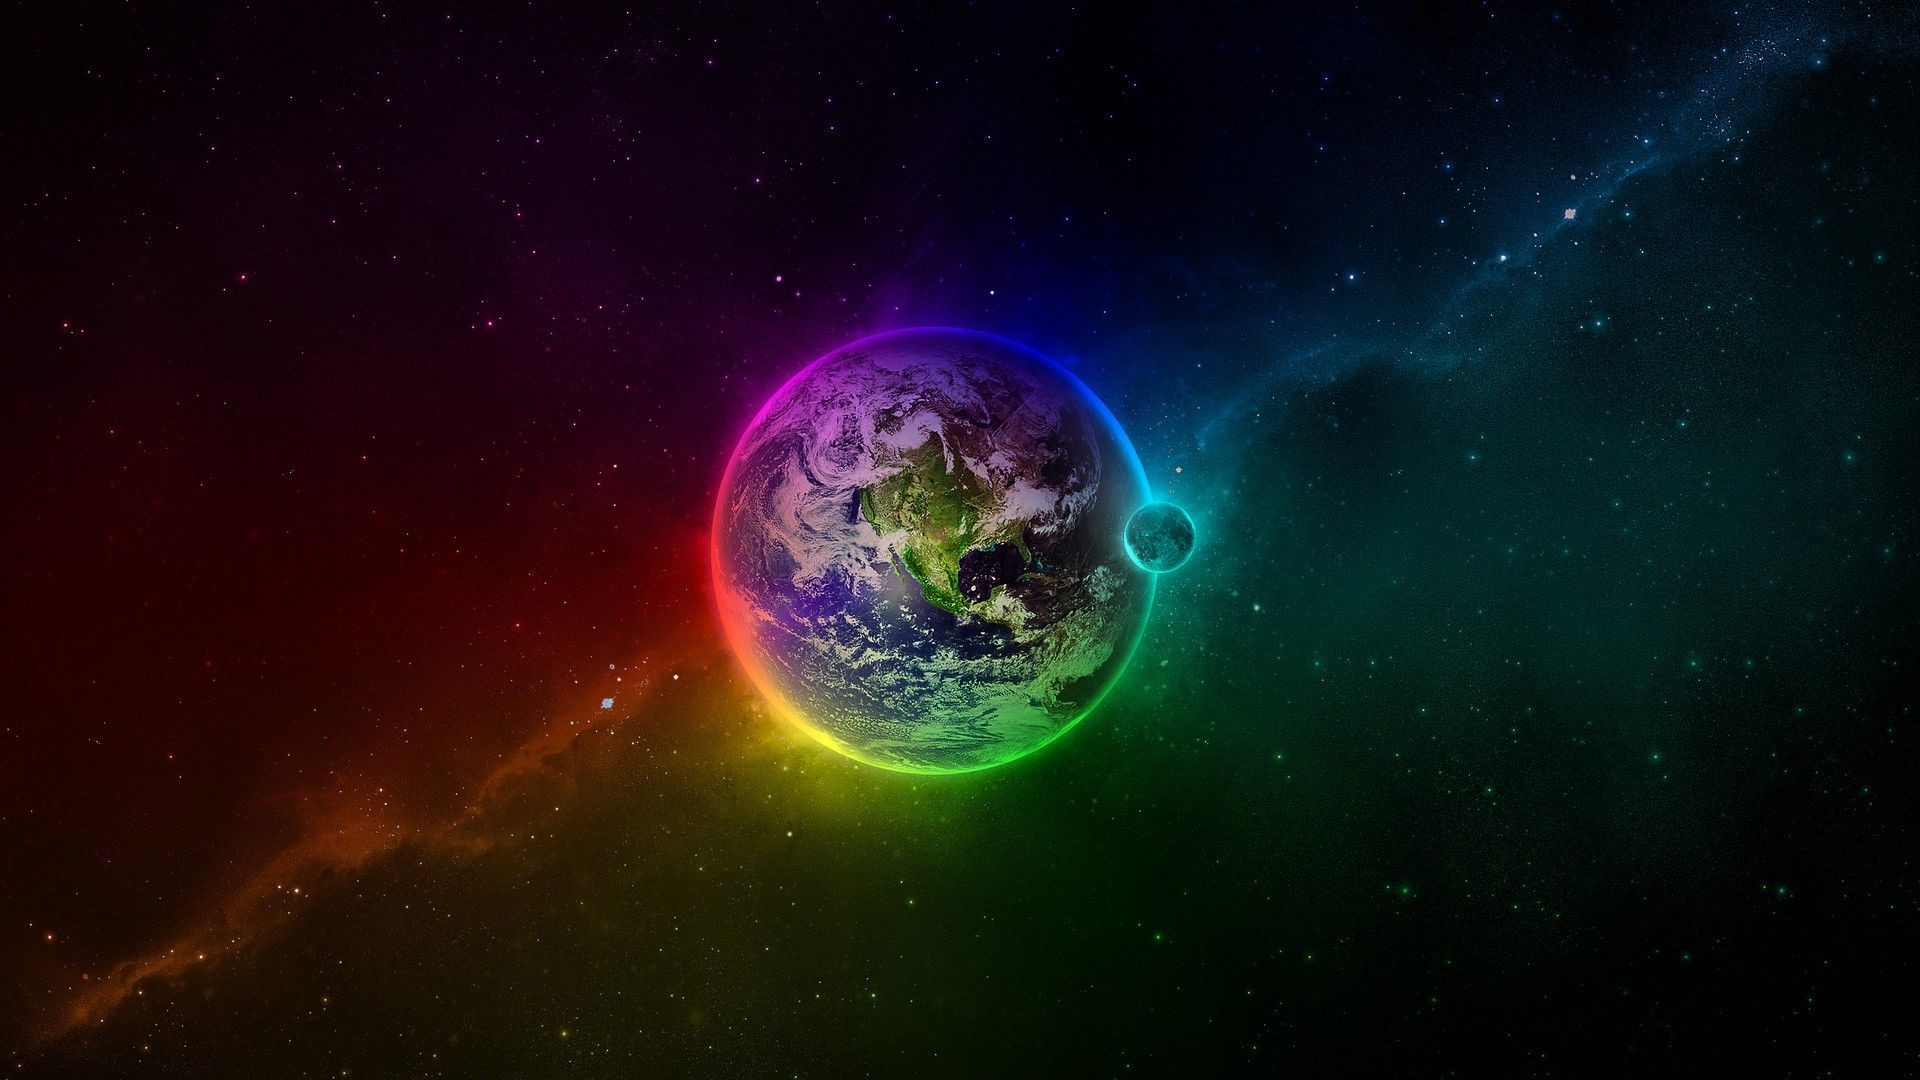 High Resolution Space Wallpaper – HD Wallpapers Lovely